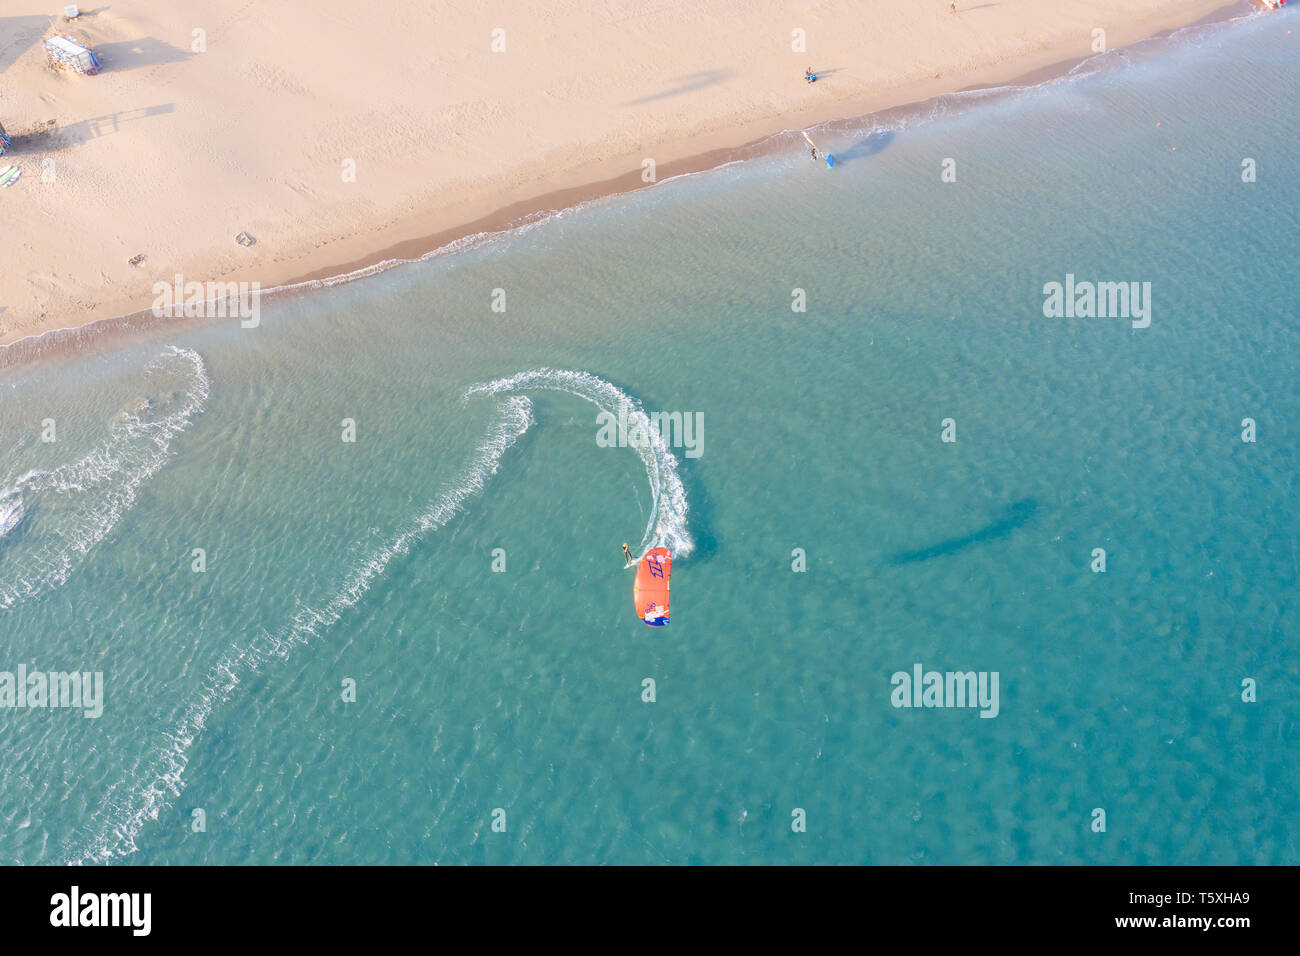 Greece, Rhodes, Prassonissi Pensinsula, a popular place for watersports to due to high wind currents - Stock Image